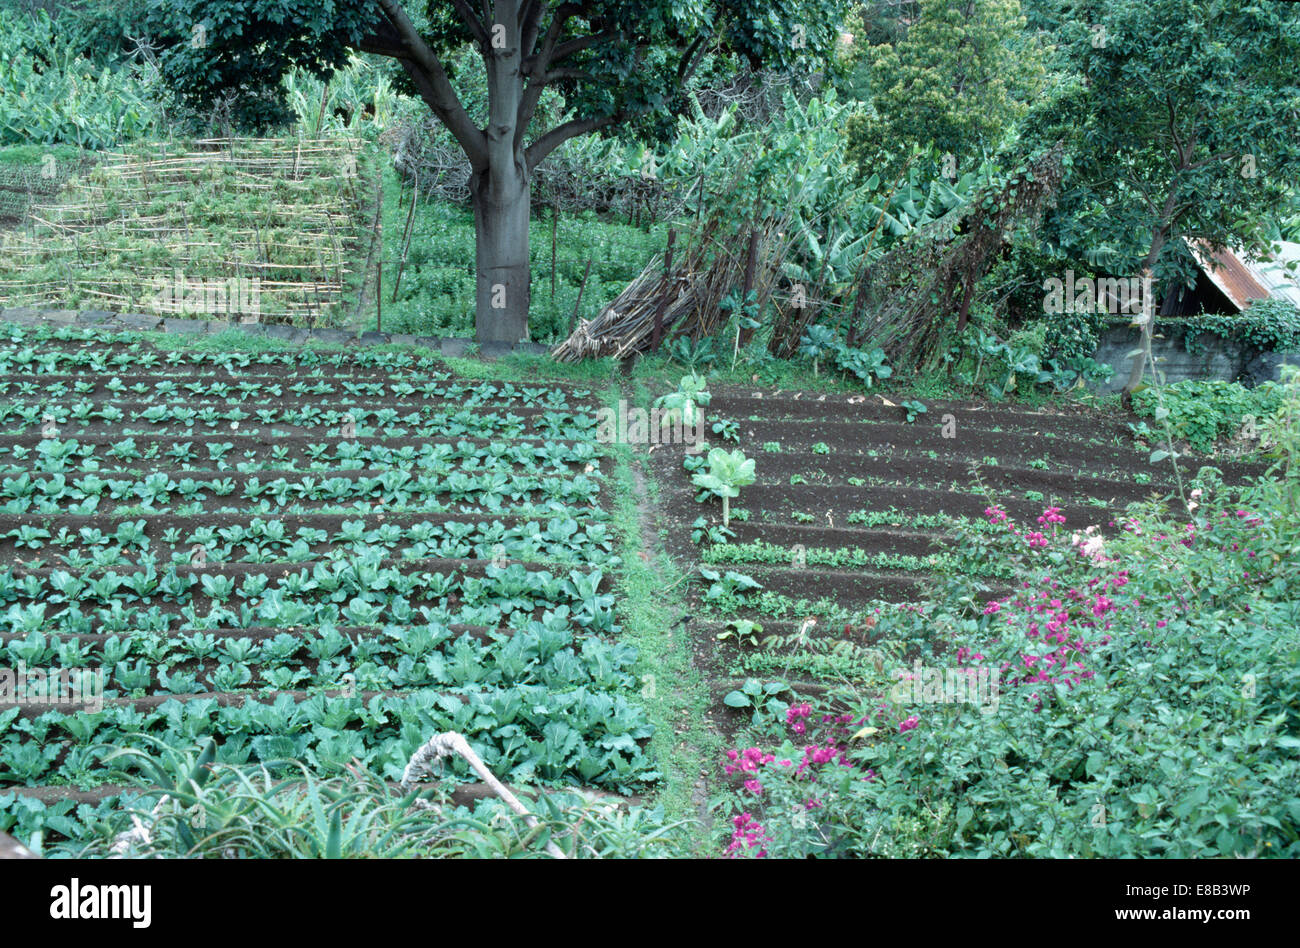 Country vegetable gardens - Cabbages And Vegetables Growing In Neat Rows In Large Country Vegetable Garden